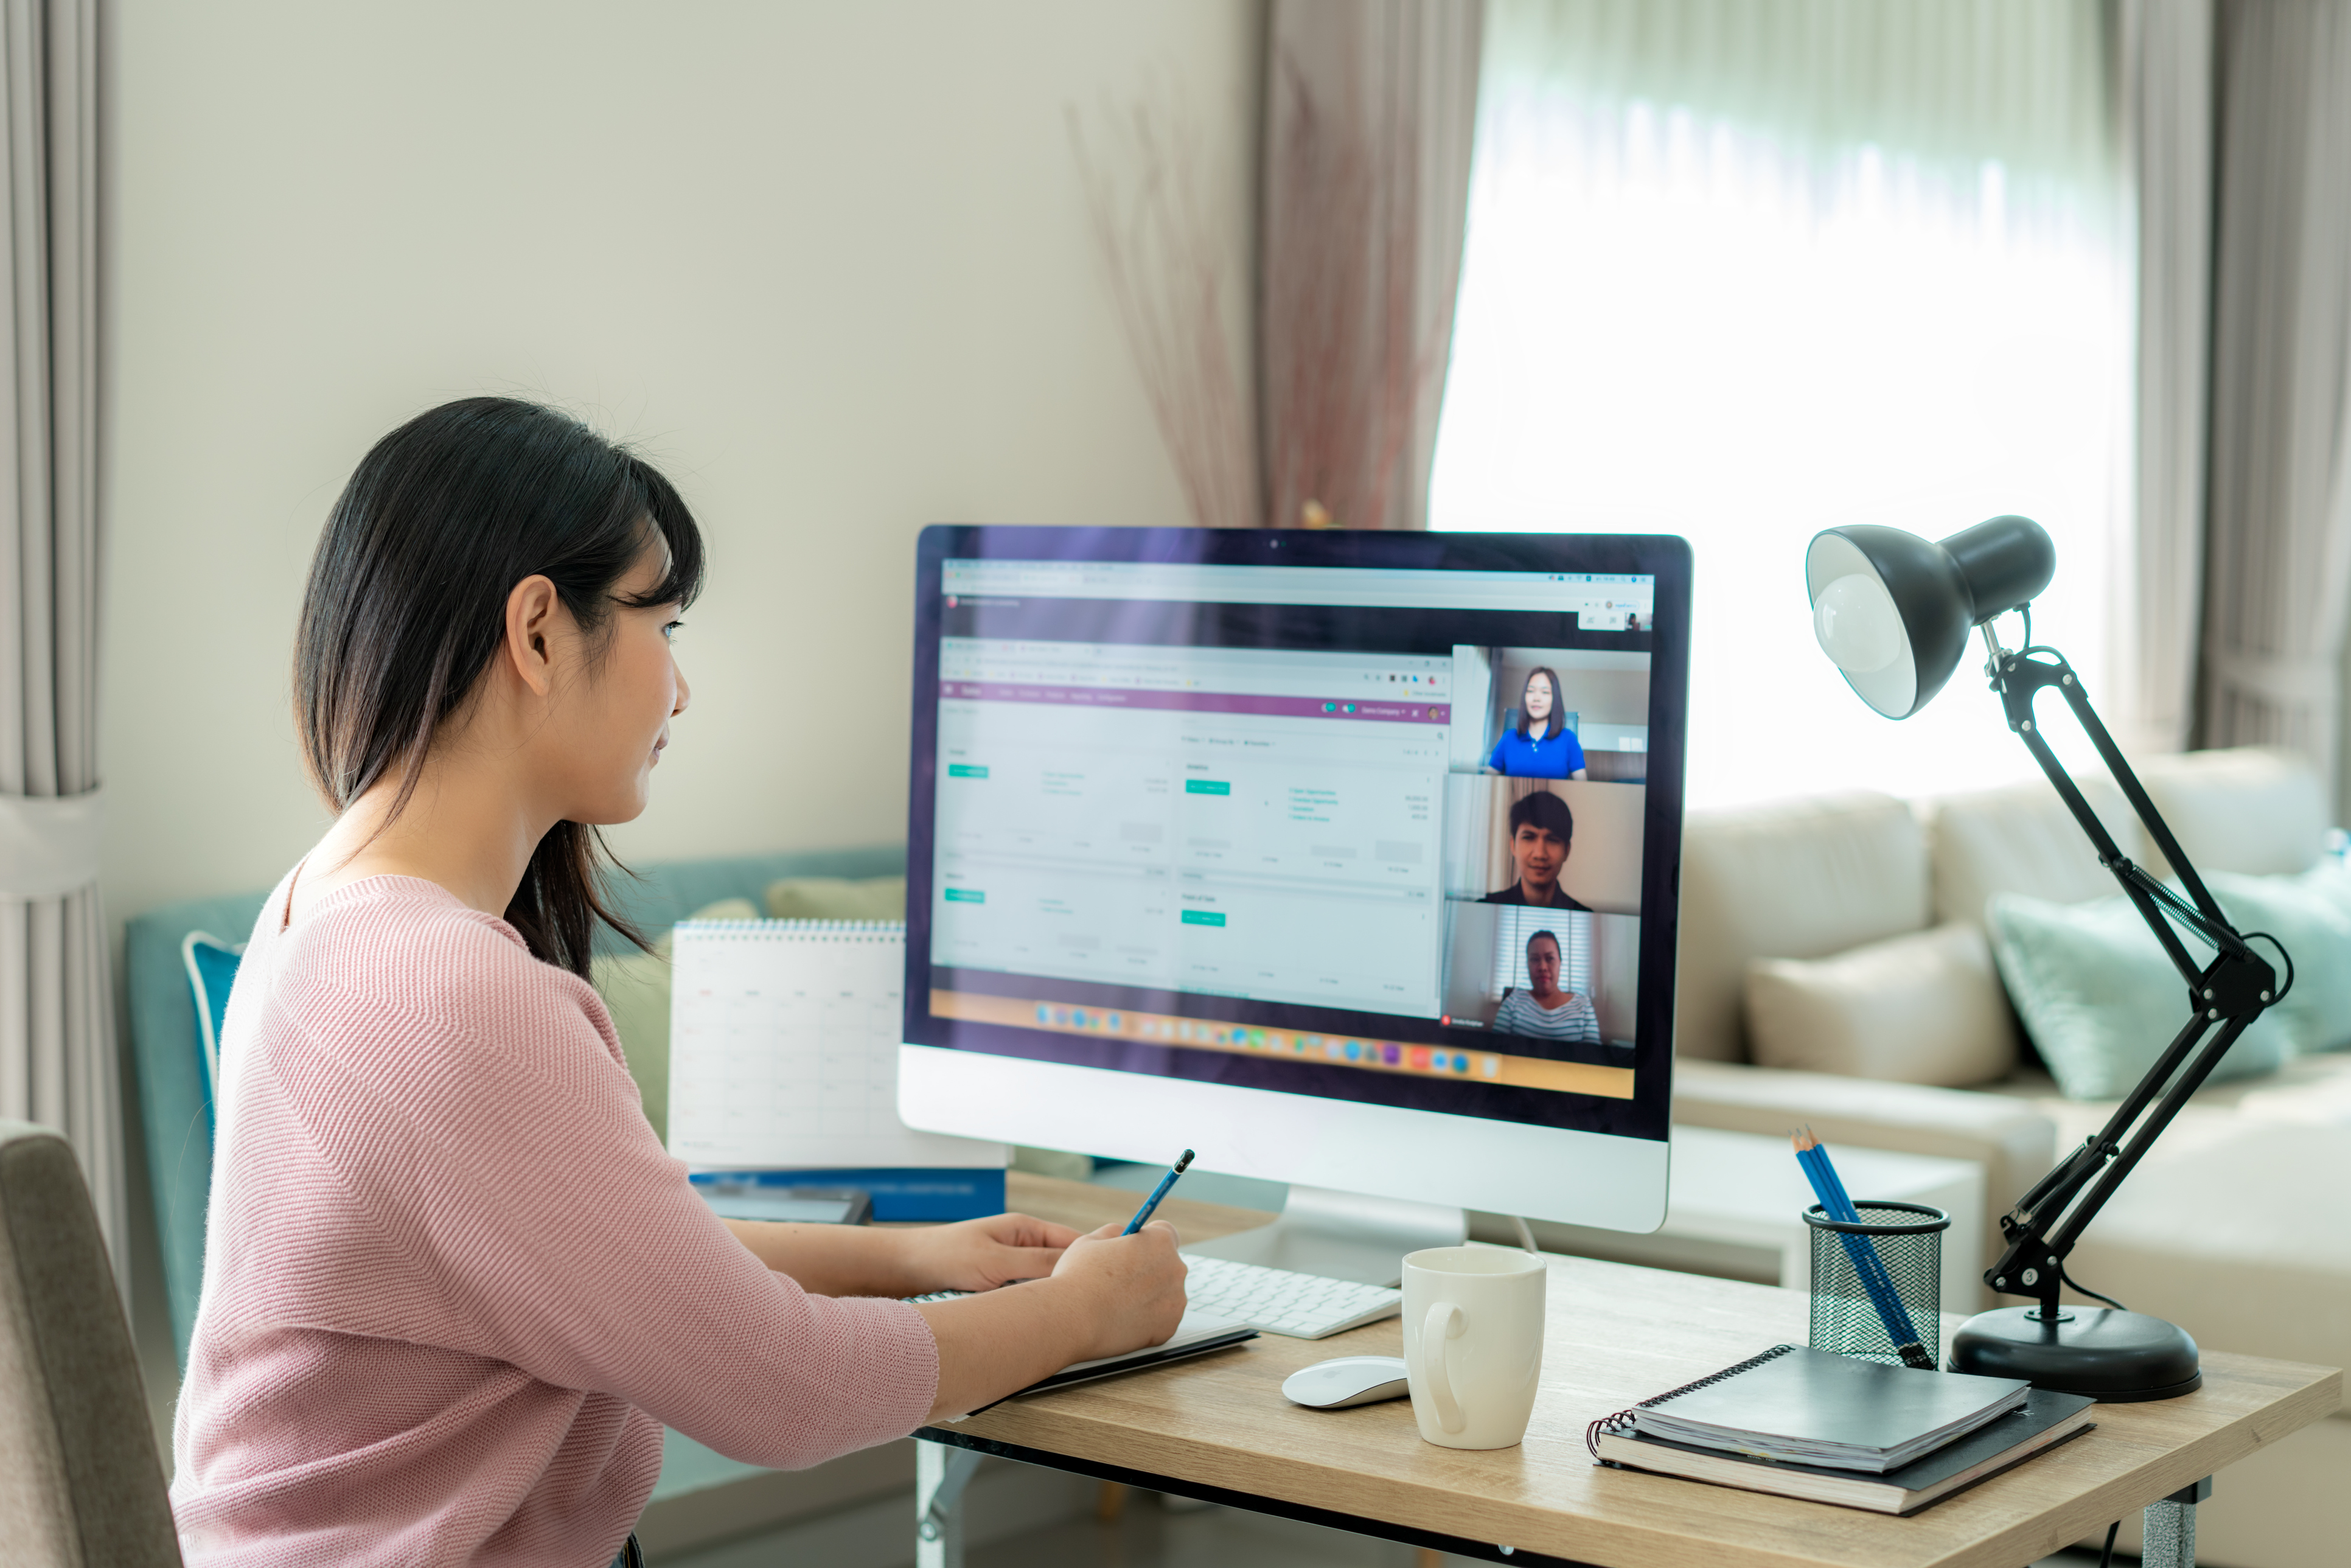 PM Working Remotely